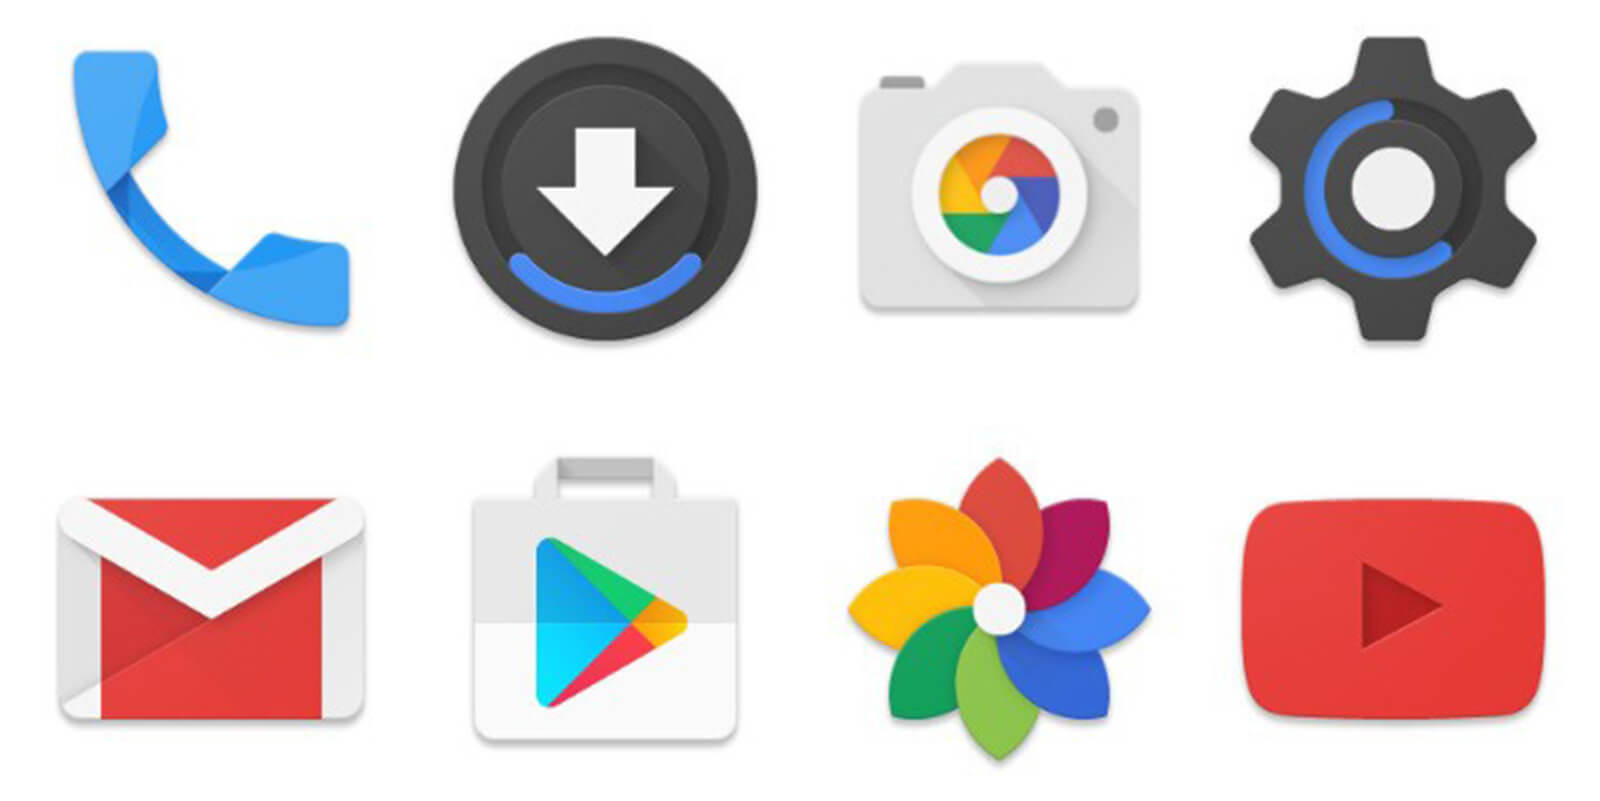 Iconos CandyCons Icon Pack